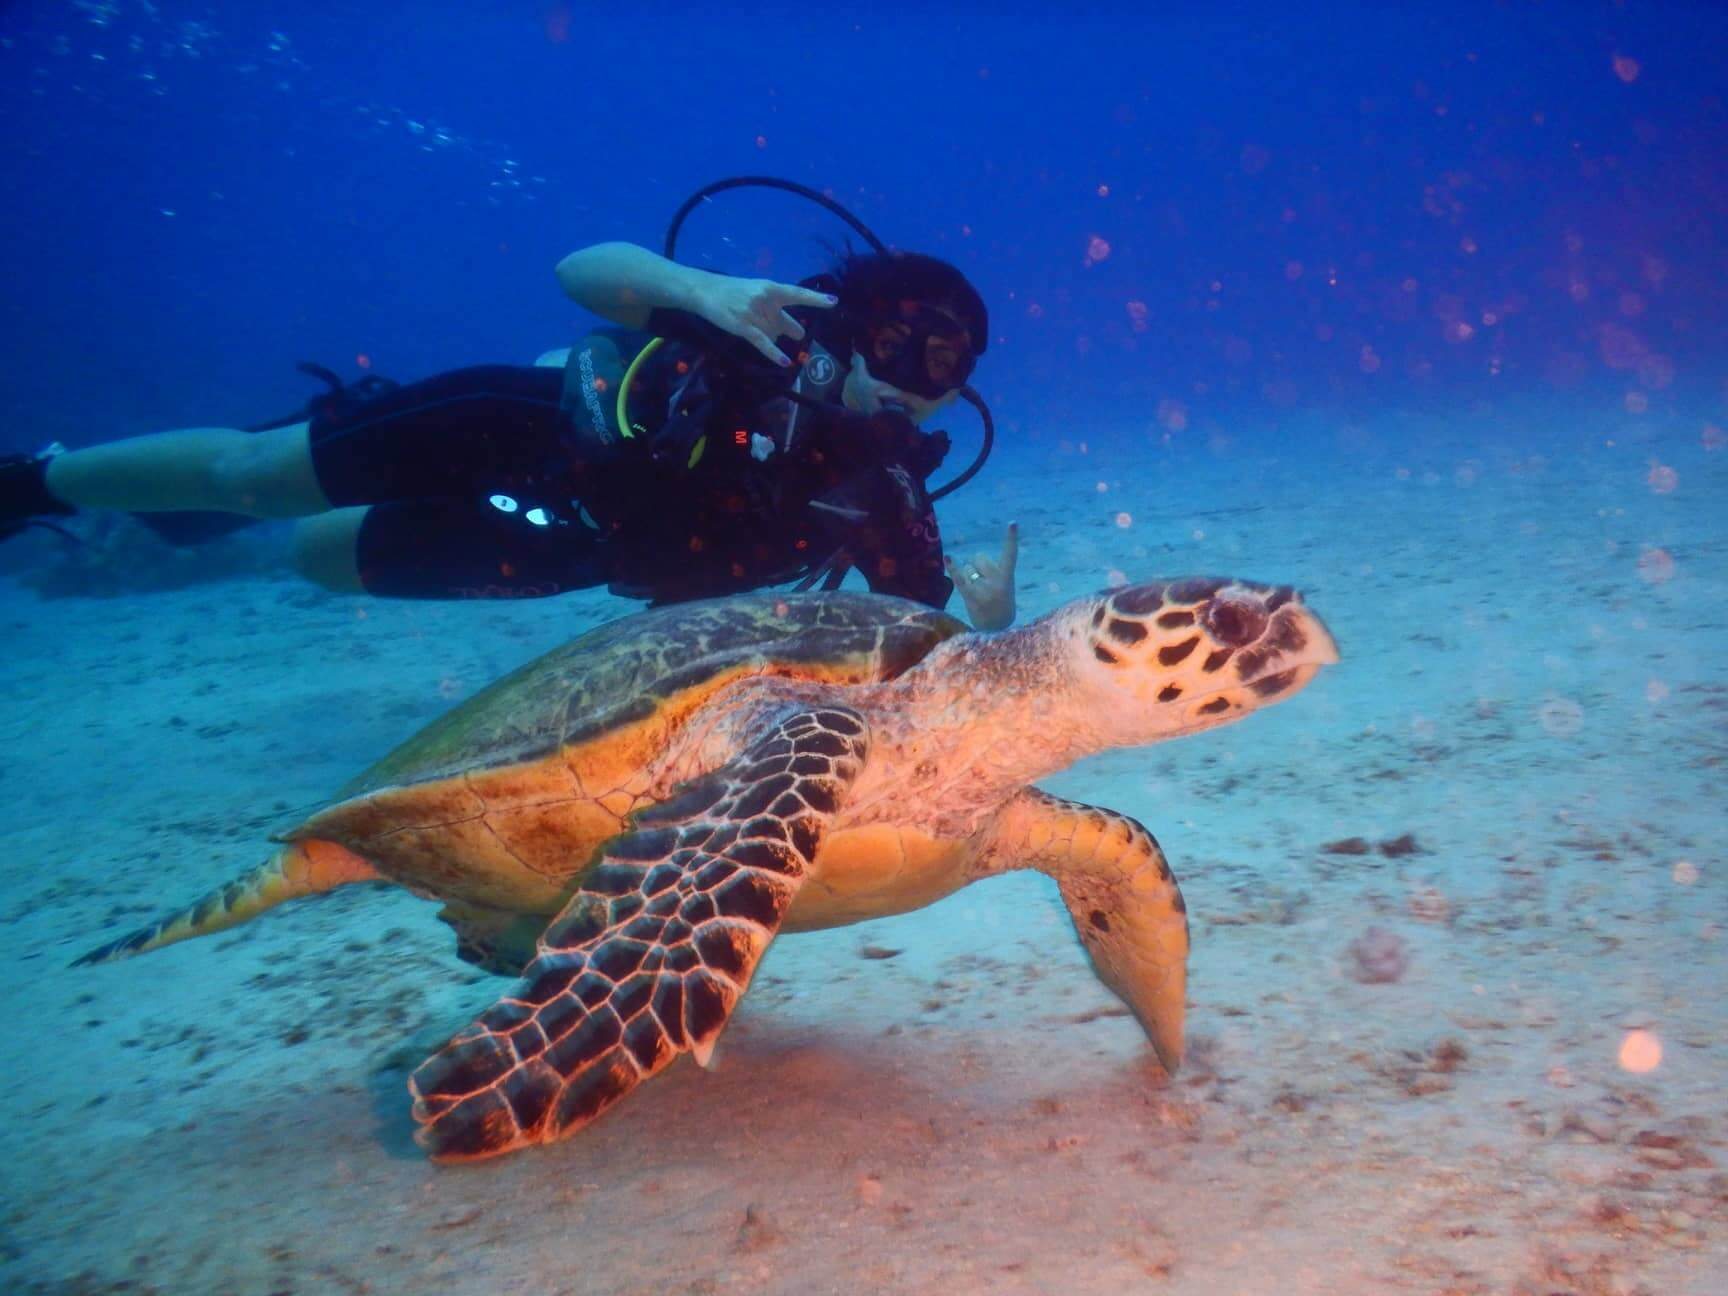 Egypt-REDSEA-Hurghada-Divepro-Academy-Diving-Center-Diver-with-Water-Trutle